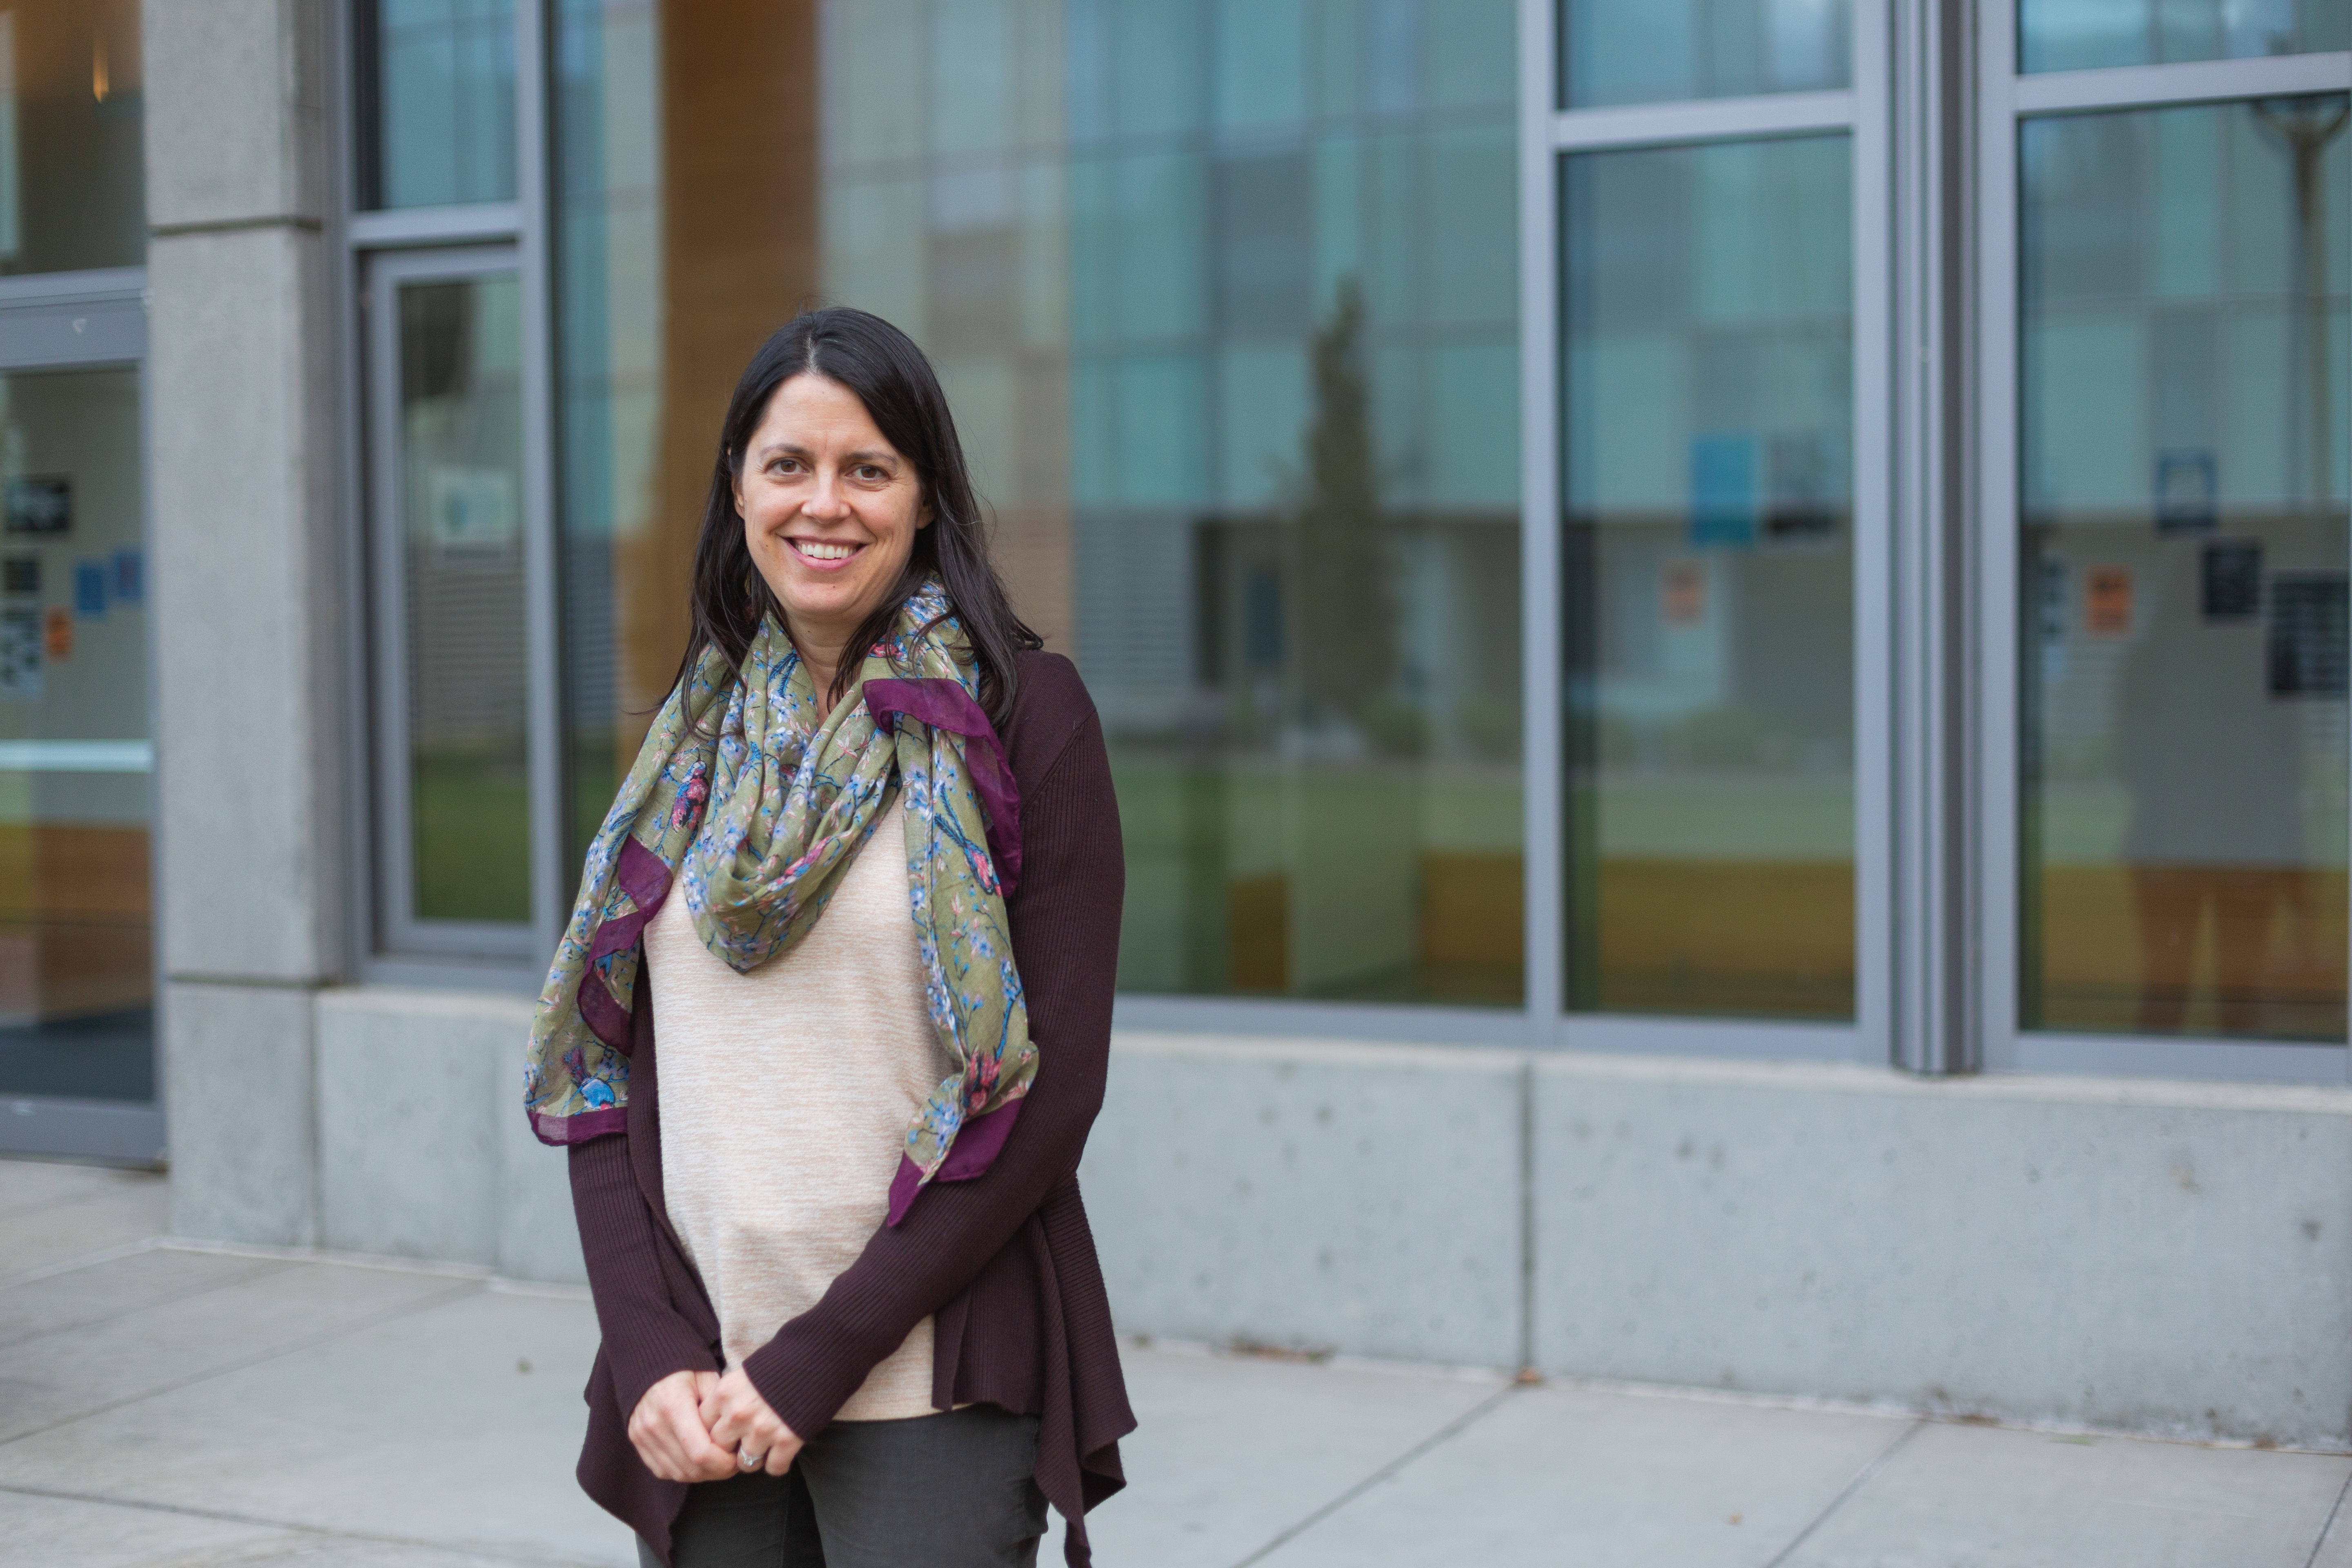 Emily Borda poses in front of the SMATE building